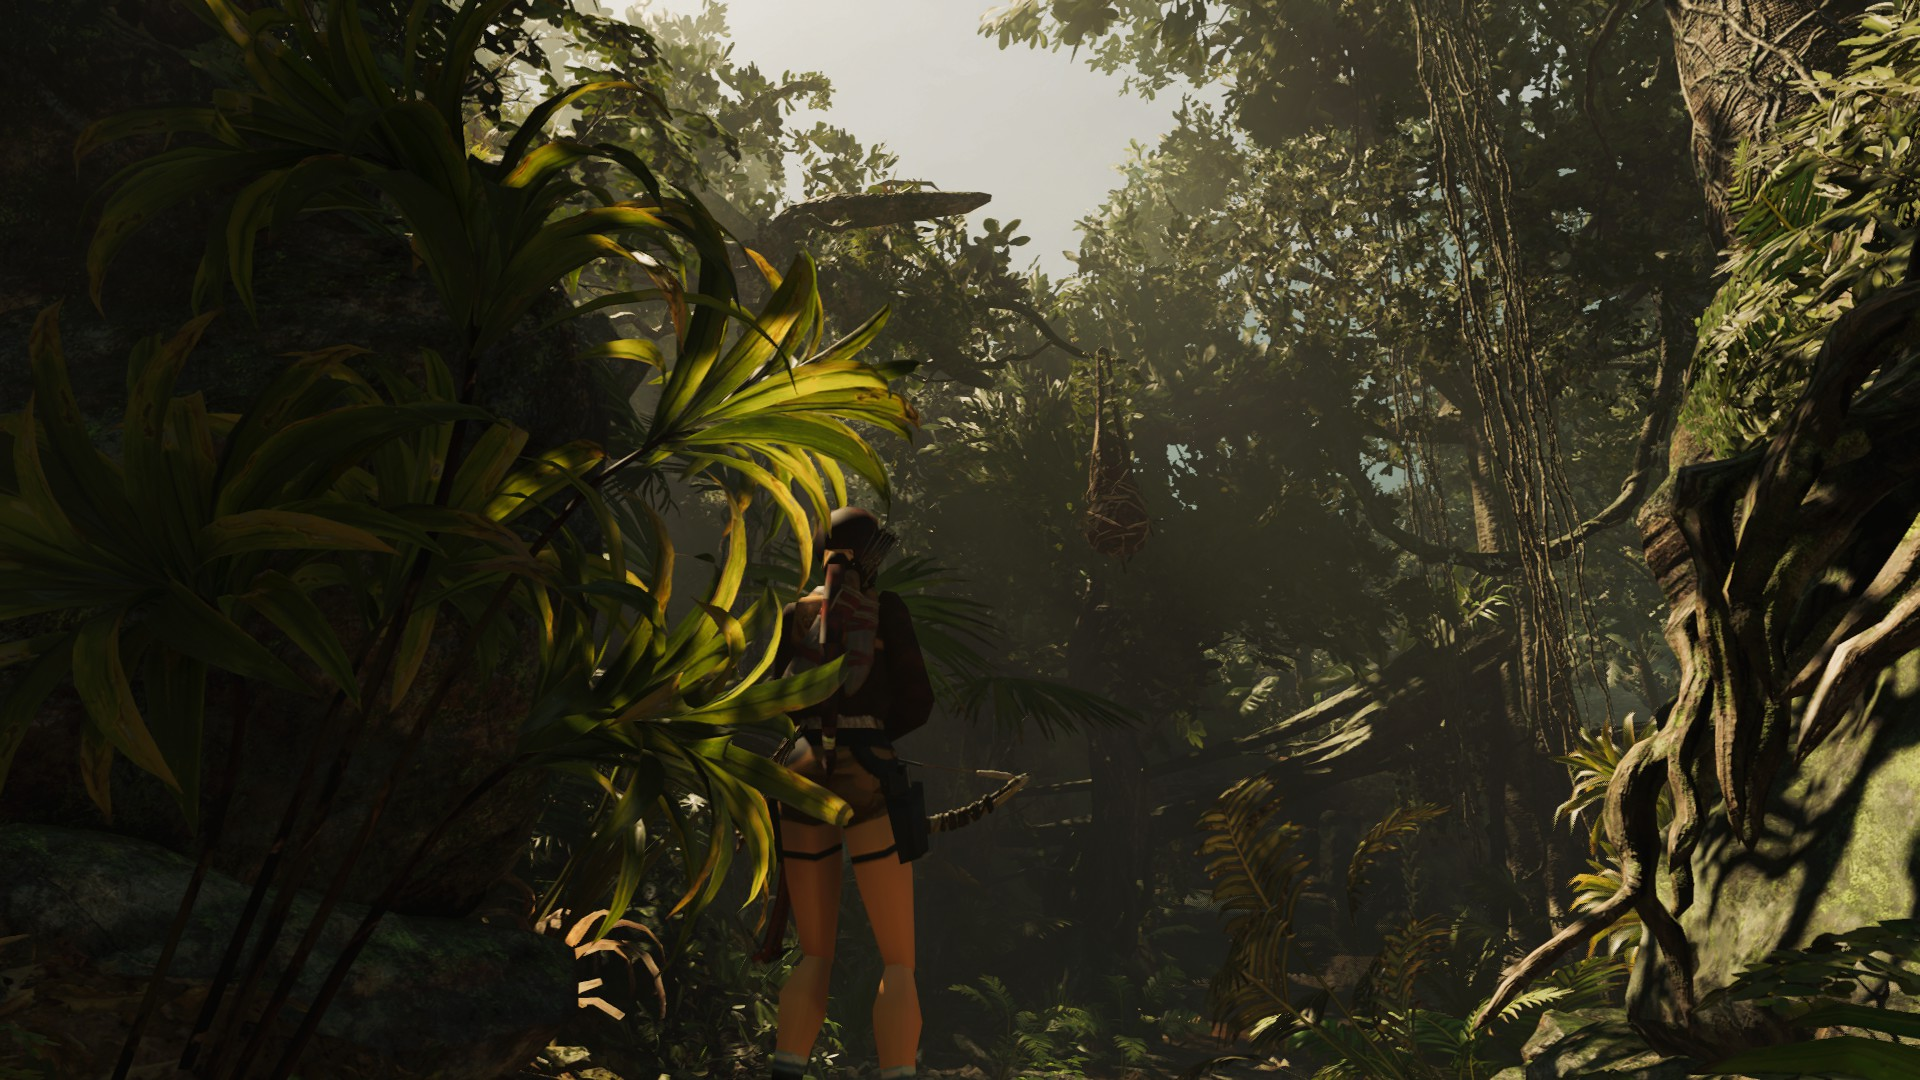 Lara about to shoot down a nest for a challenge.